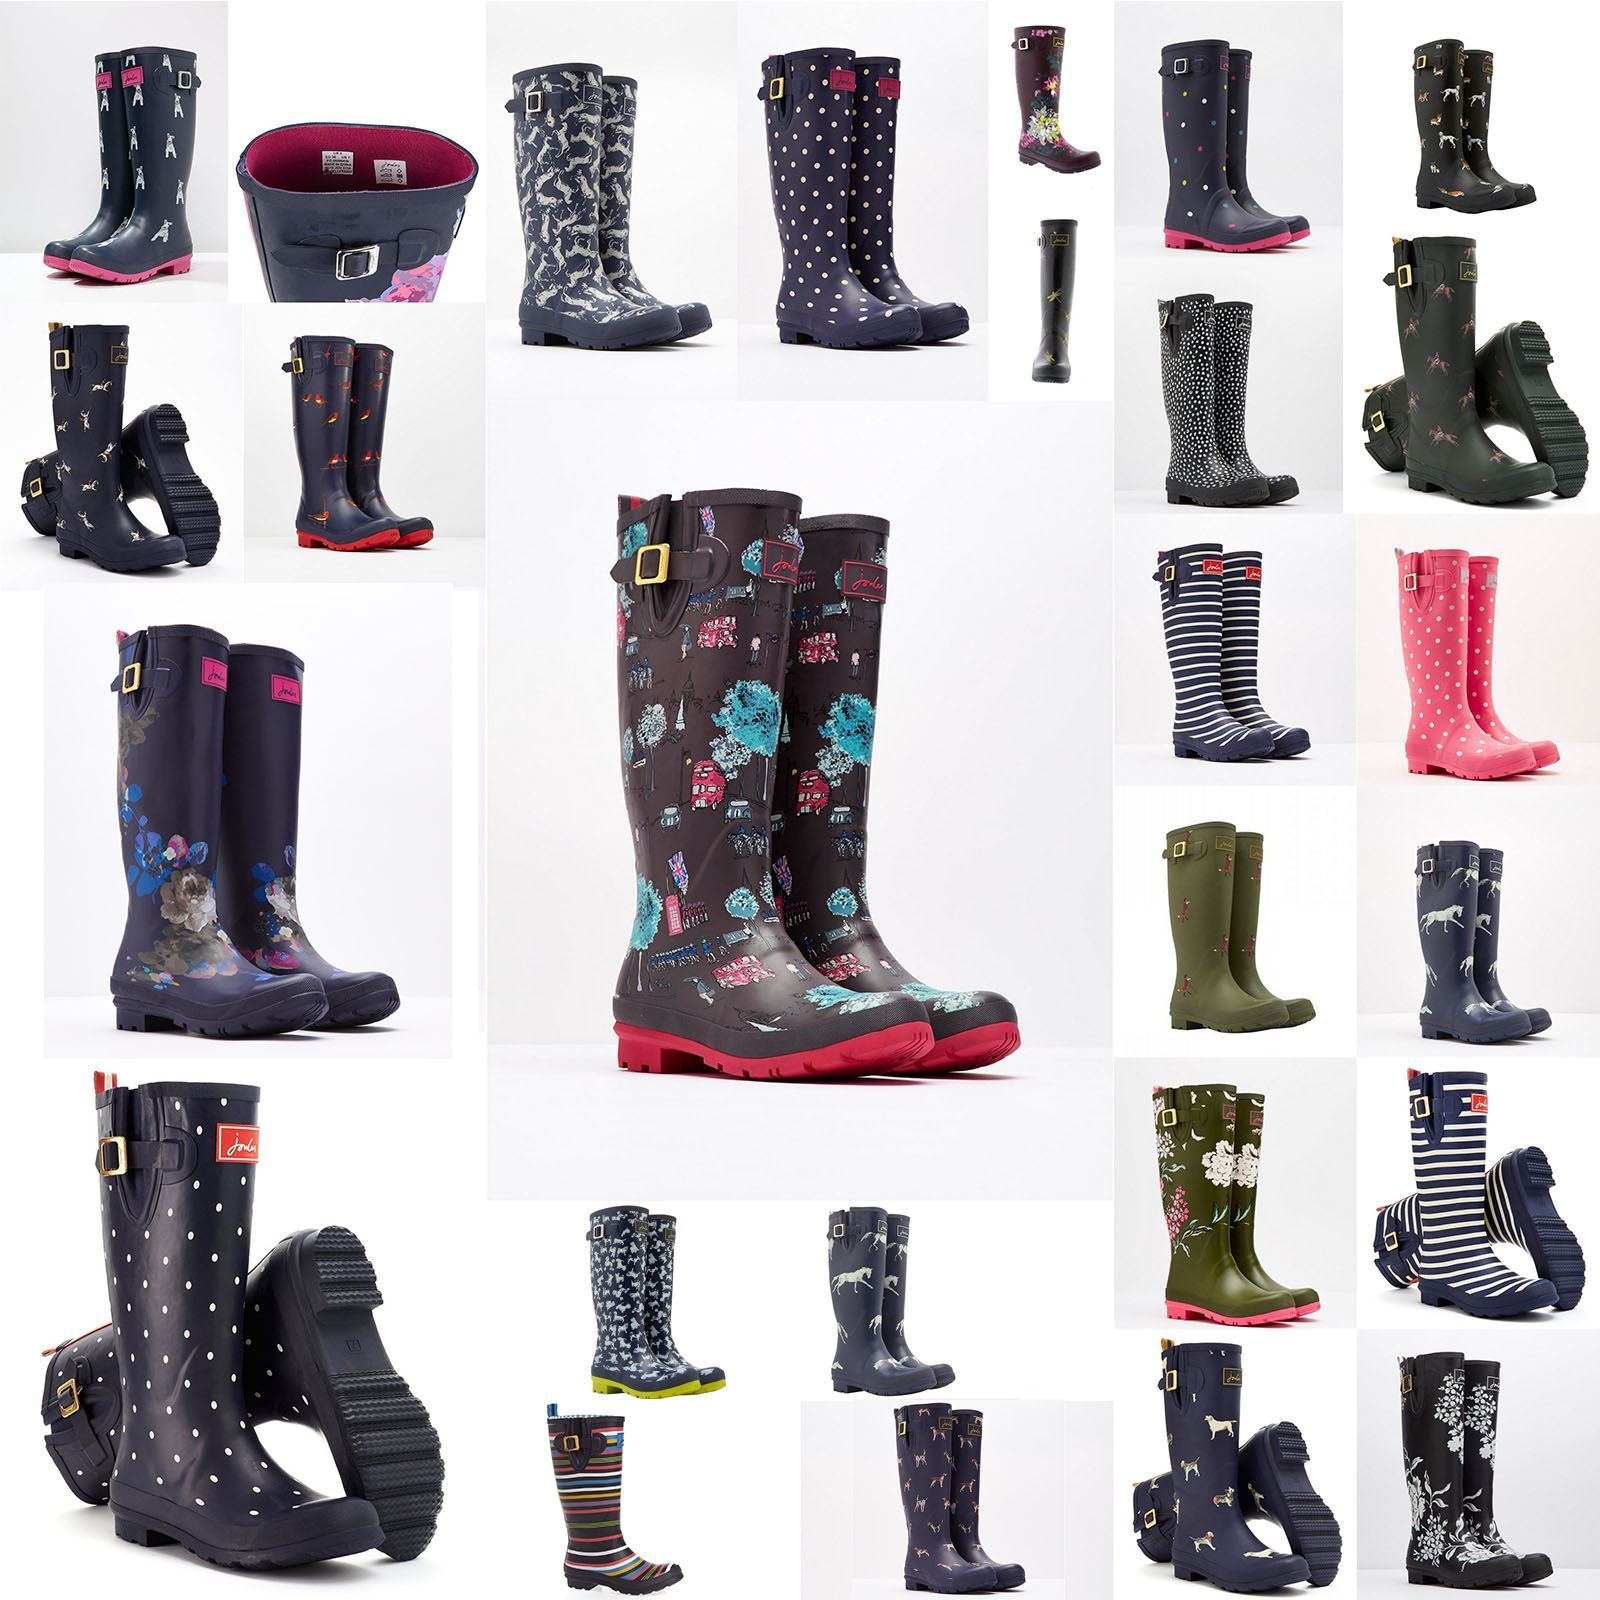 Joules Design Print Women Waterproof Fashion Rain Festival Walking Wellies Boots